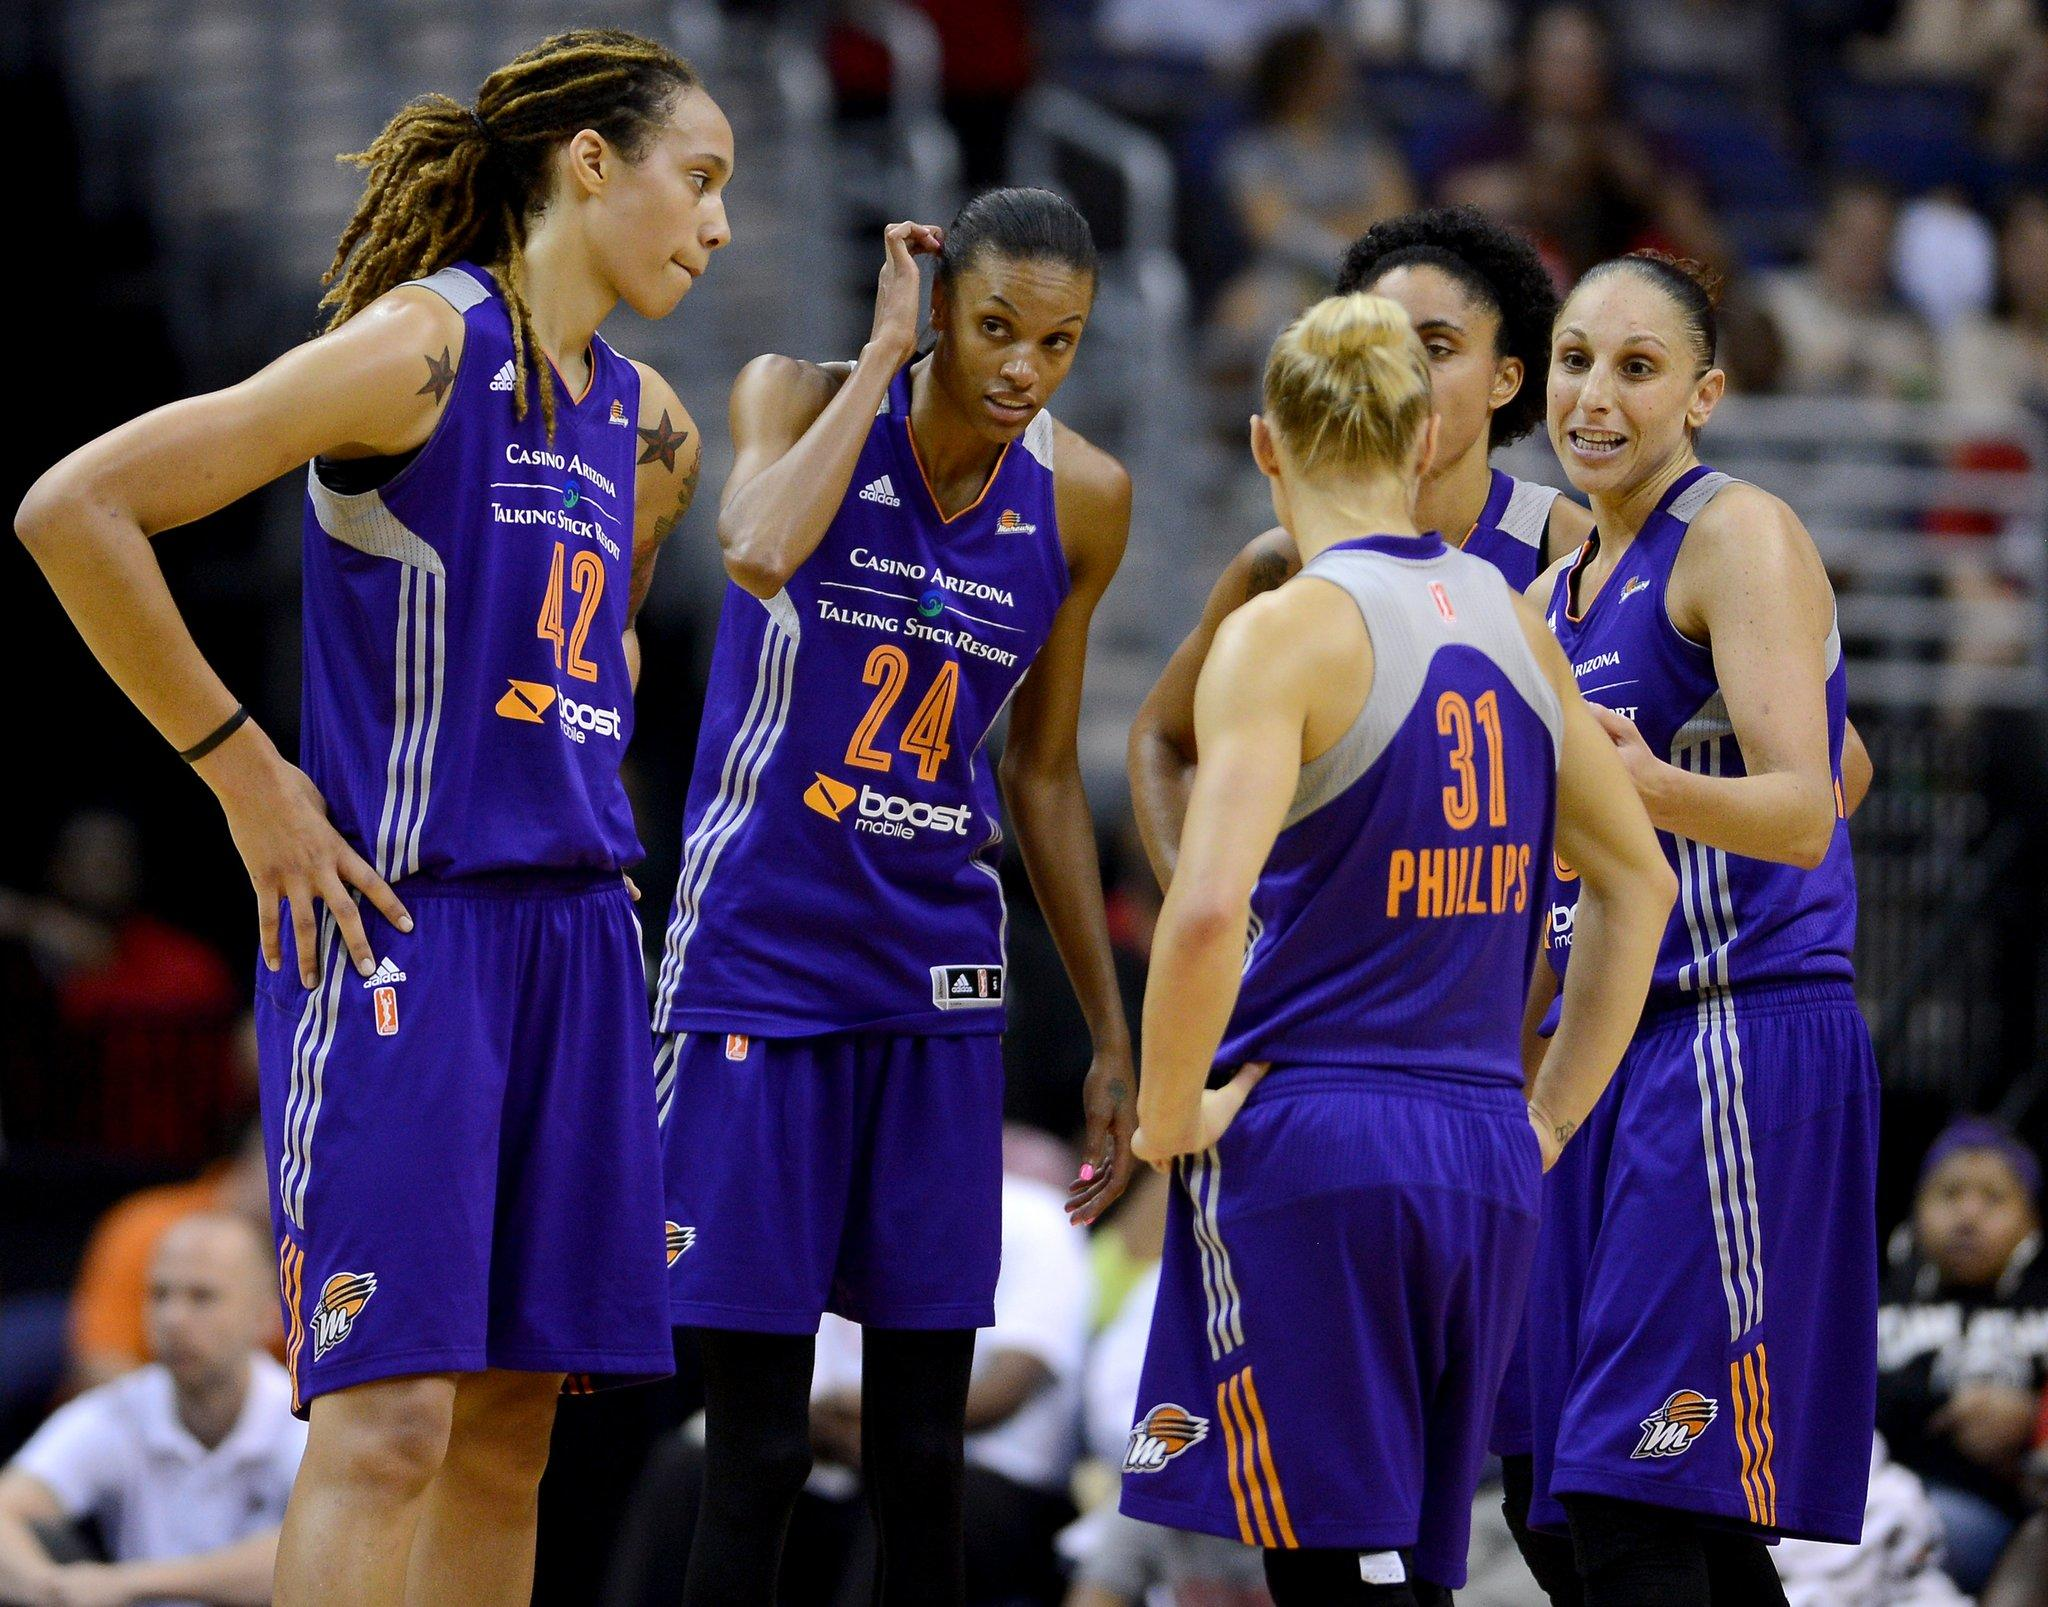 Phoenix Mercury guard Diana Taurasi (3), right, speaks with teammates, Mercury center Brittney Griner (42), Mercury forward DeWanna Bonner (24), Mercury forward Candice Dupree (4) and Mercury guard Erin Phillips (31), during a timeout in the fourth quarter against the Washington Mystics at the Verizon Center in Washington, Tuesday, June 10, 2014. The Mercury defeated the Mystics, 81-66. (Chuck Myers/MCT)